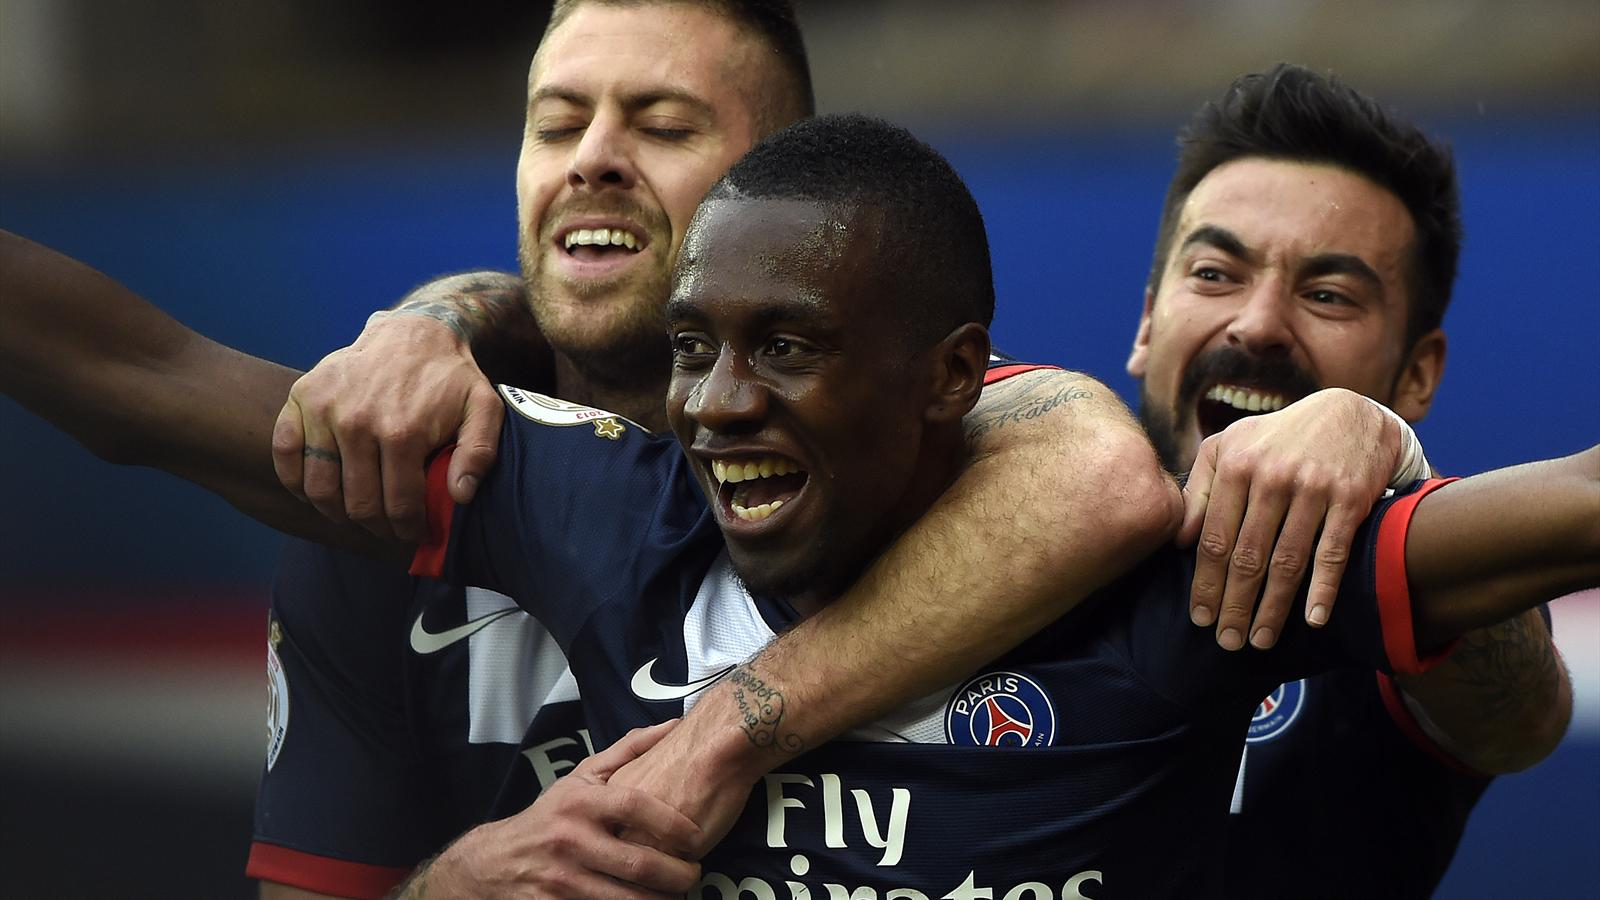 FRANCE, Paris : Paris Saint-Germain's French midfielder Blaise Matuidi (C) is congratuled by teammate Paris Saint-Germain's French midfielder Jeremy Menez (L) after scoring a goal during the French L1 football match Paris Saint-Germain (PSG) vs Evian Thon